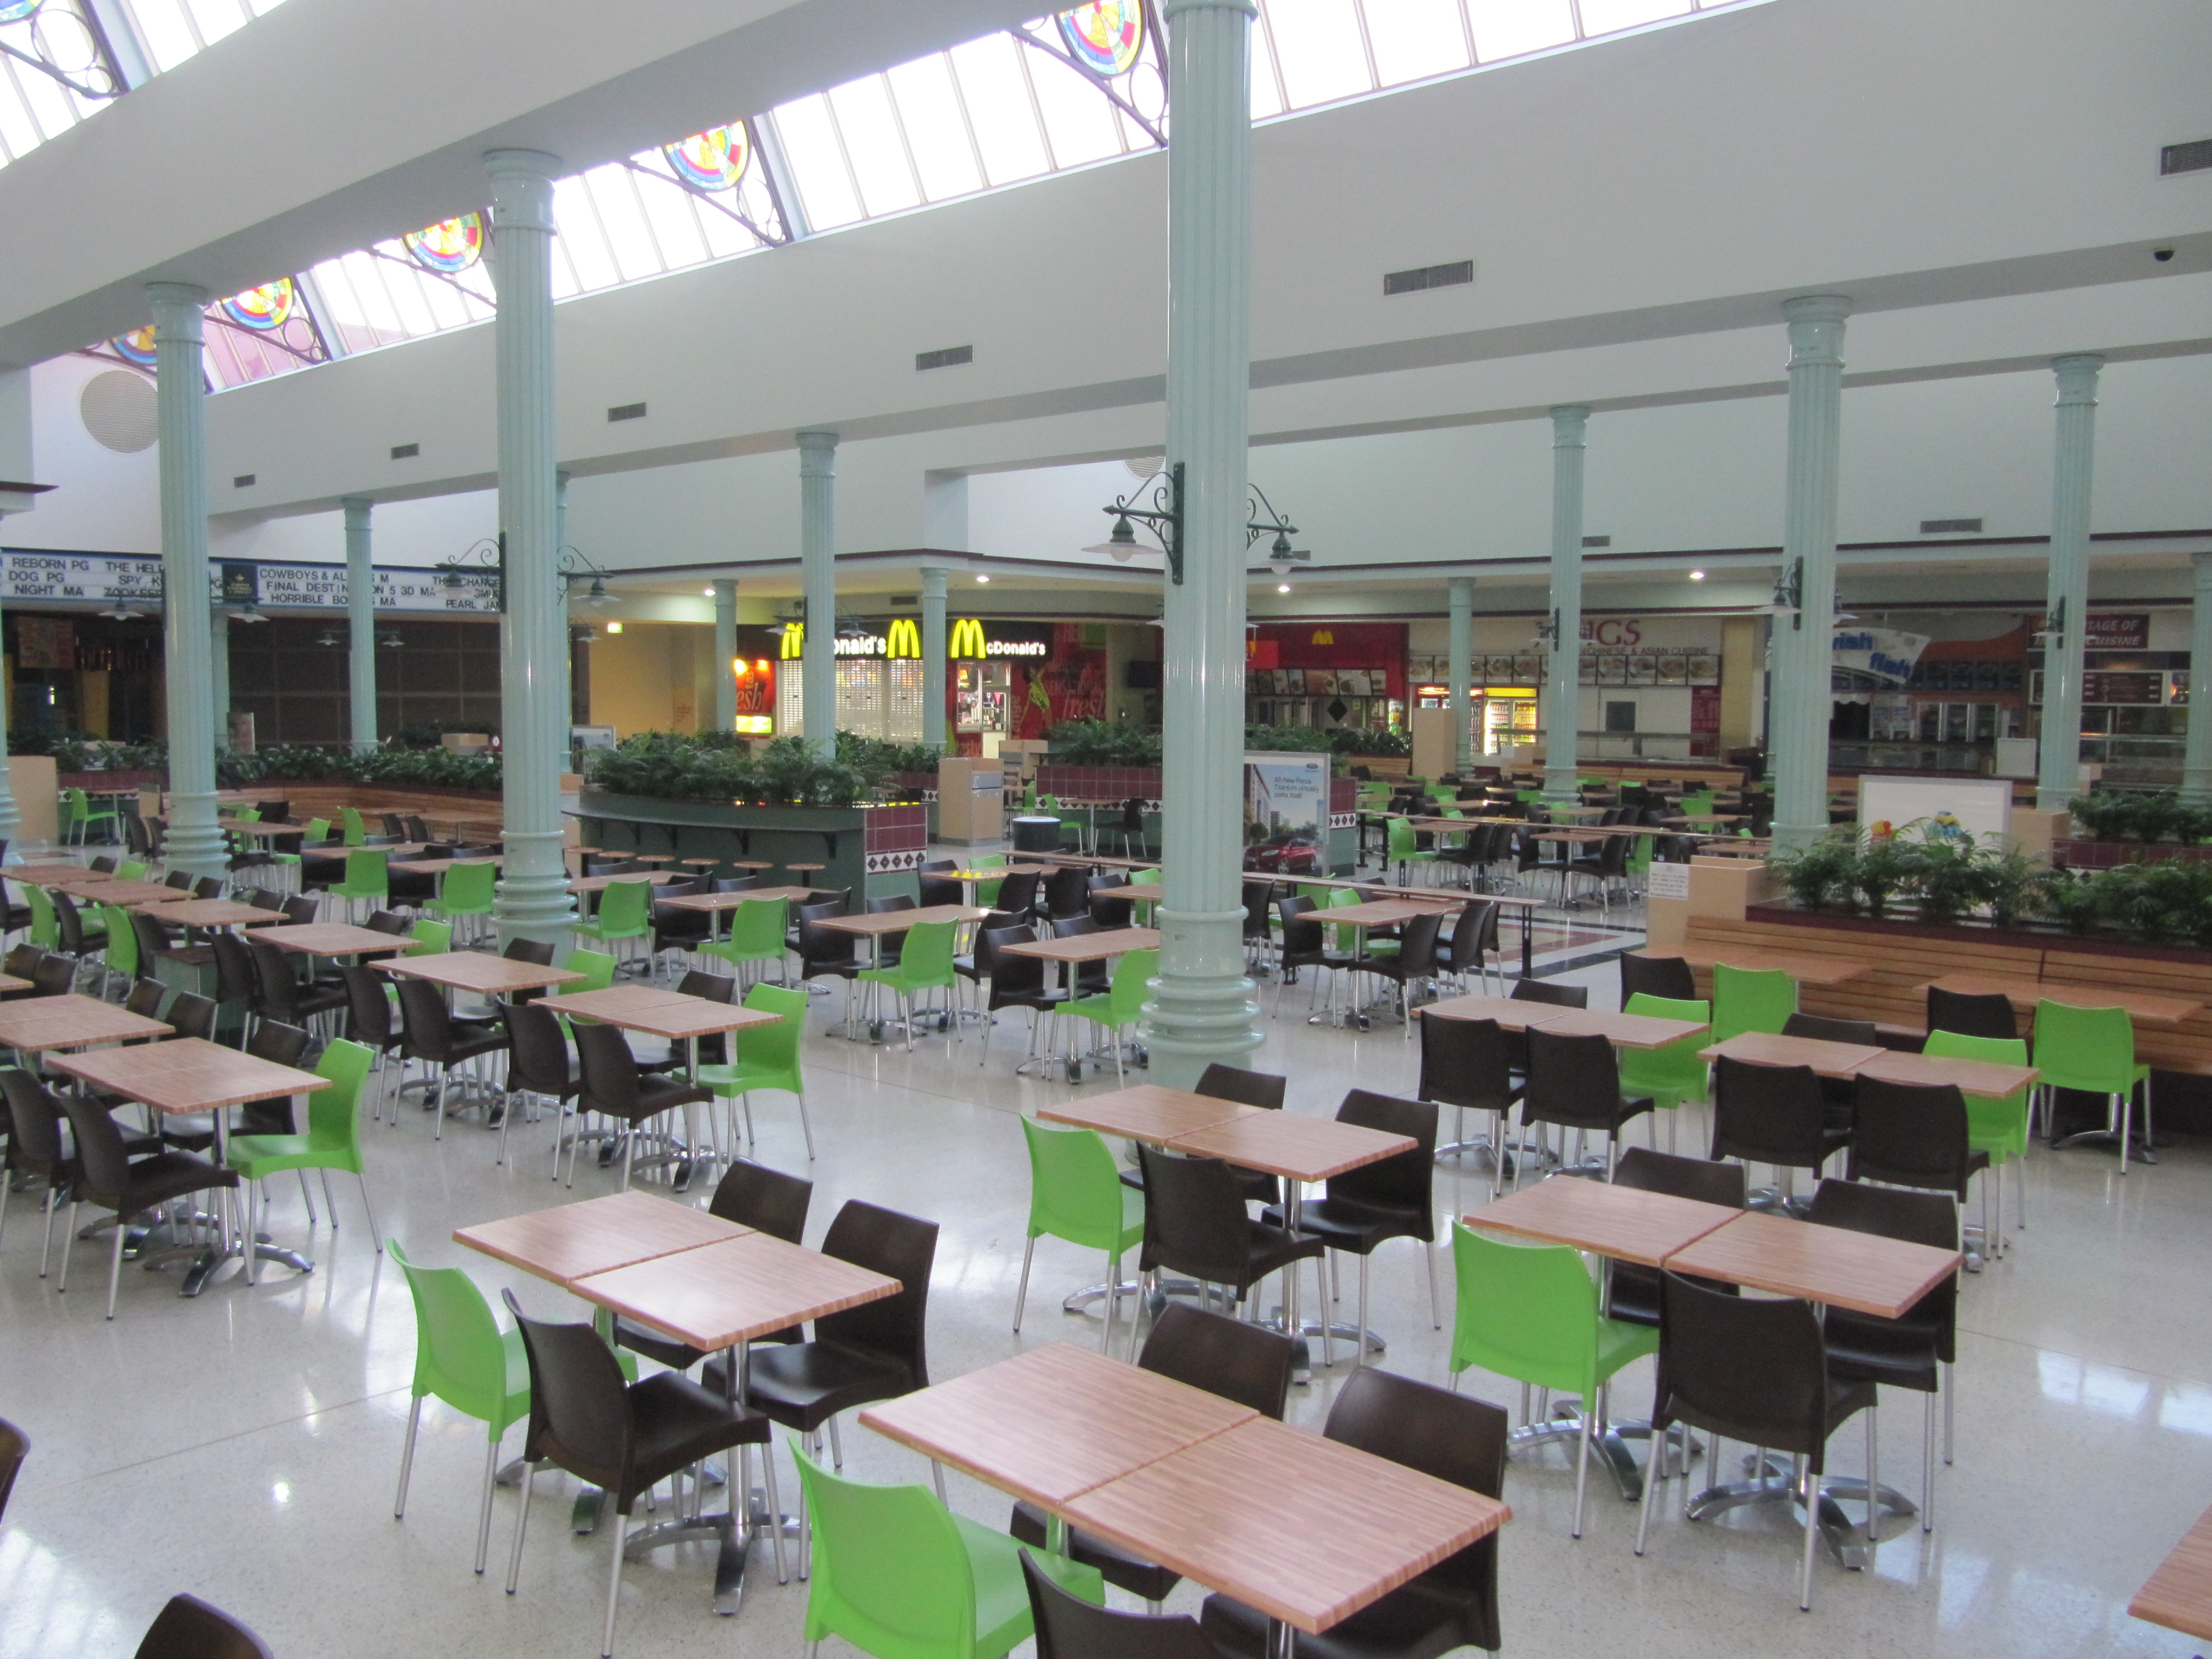 Name : Morayfield Shopping Centre